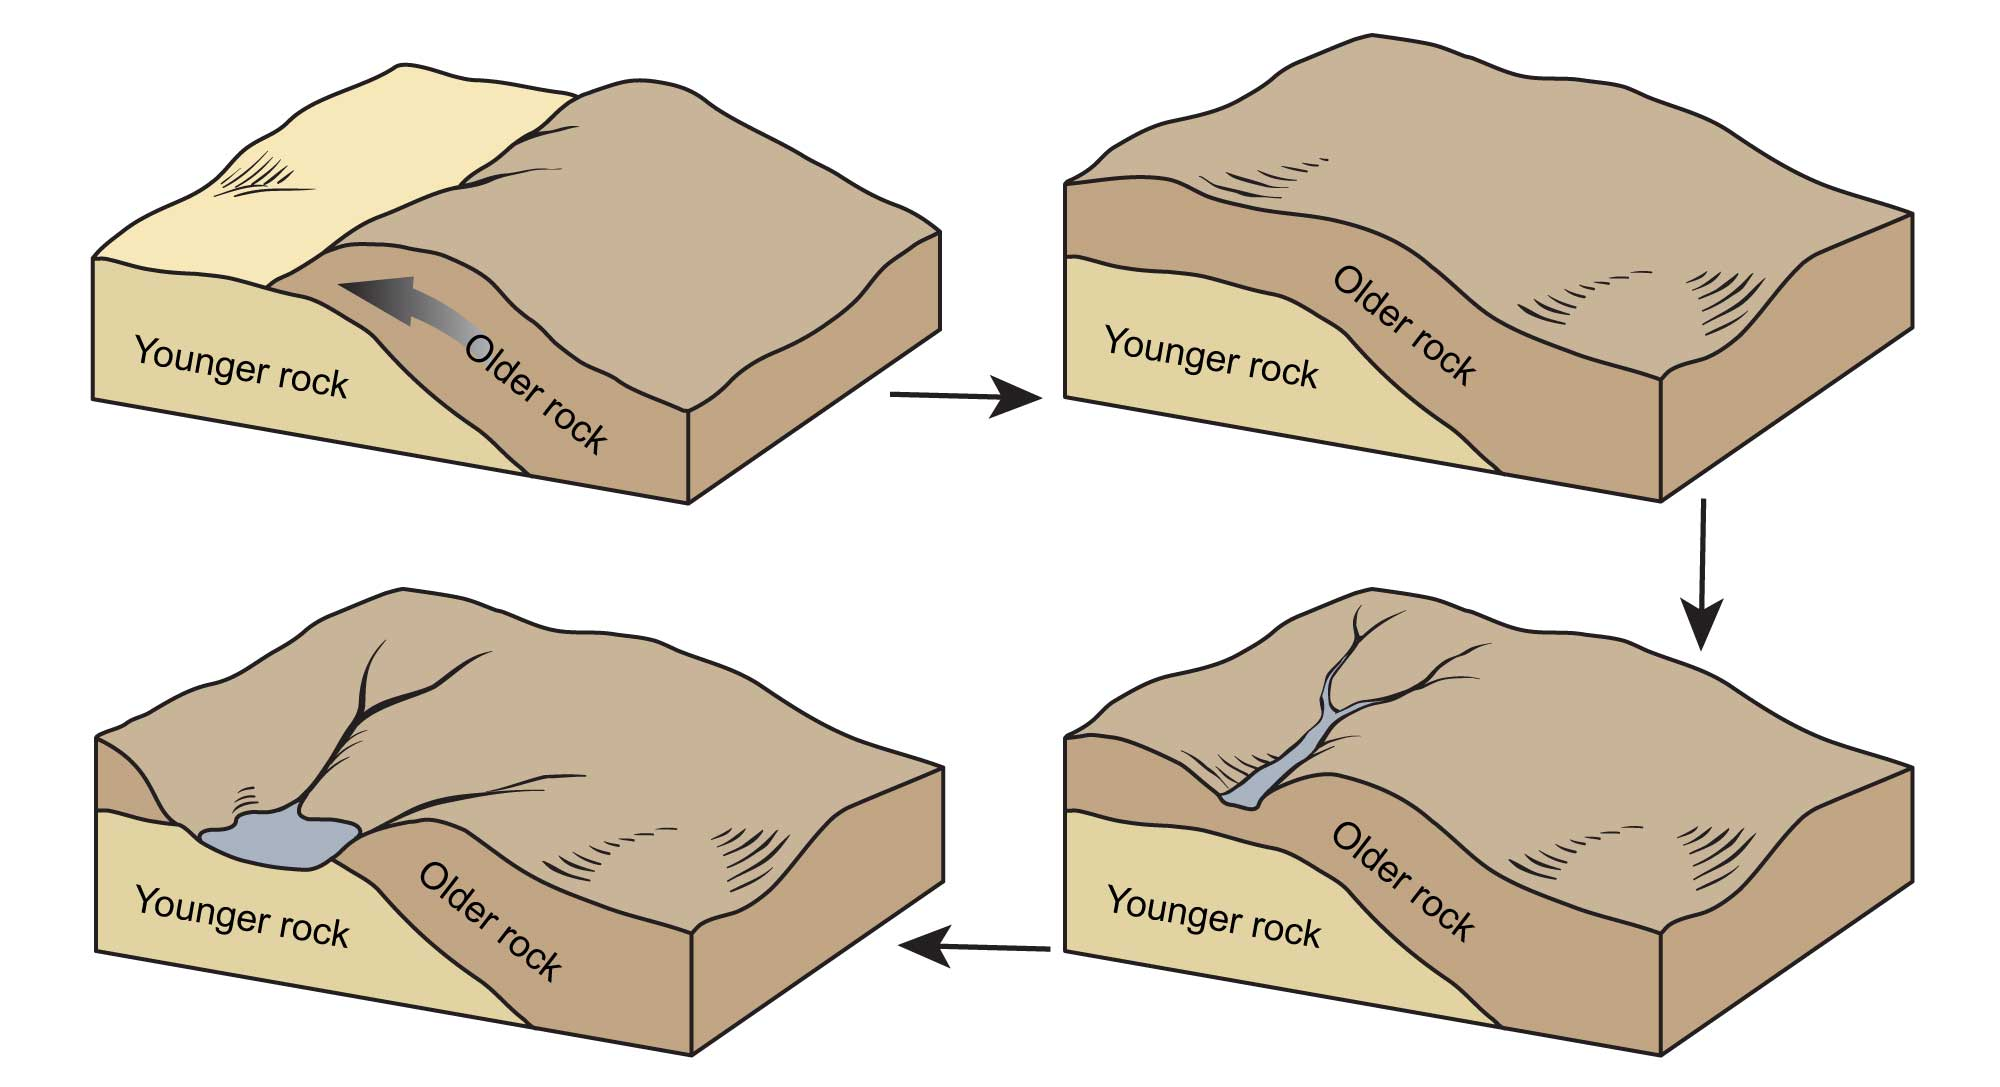 four-part illustration depicting the developmental stages of a geologic window.